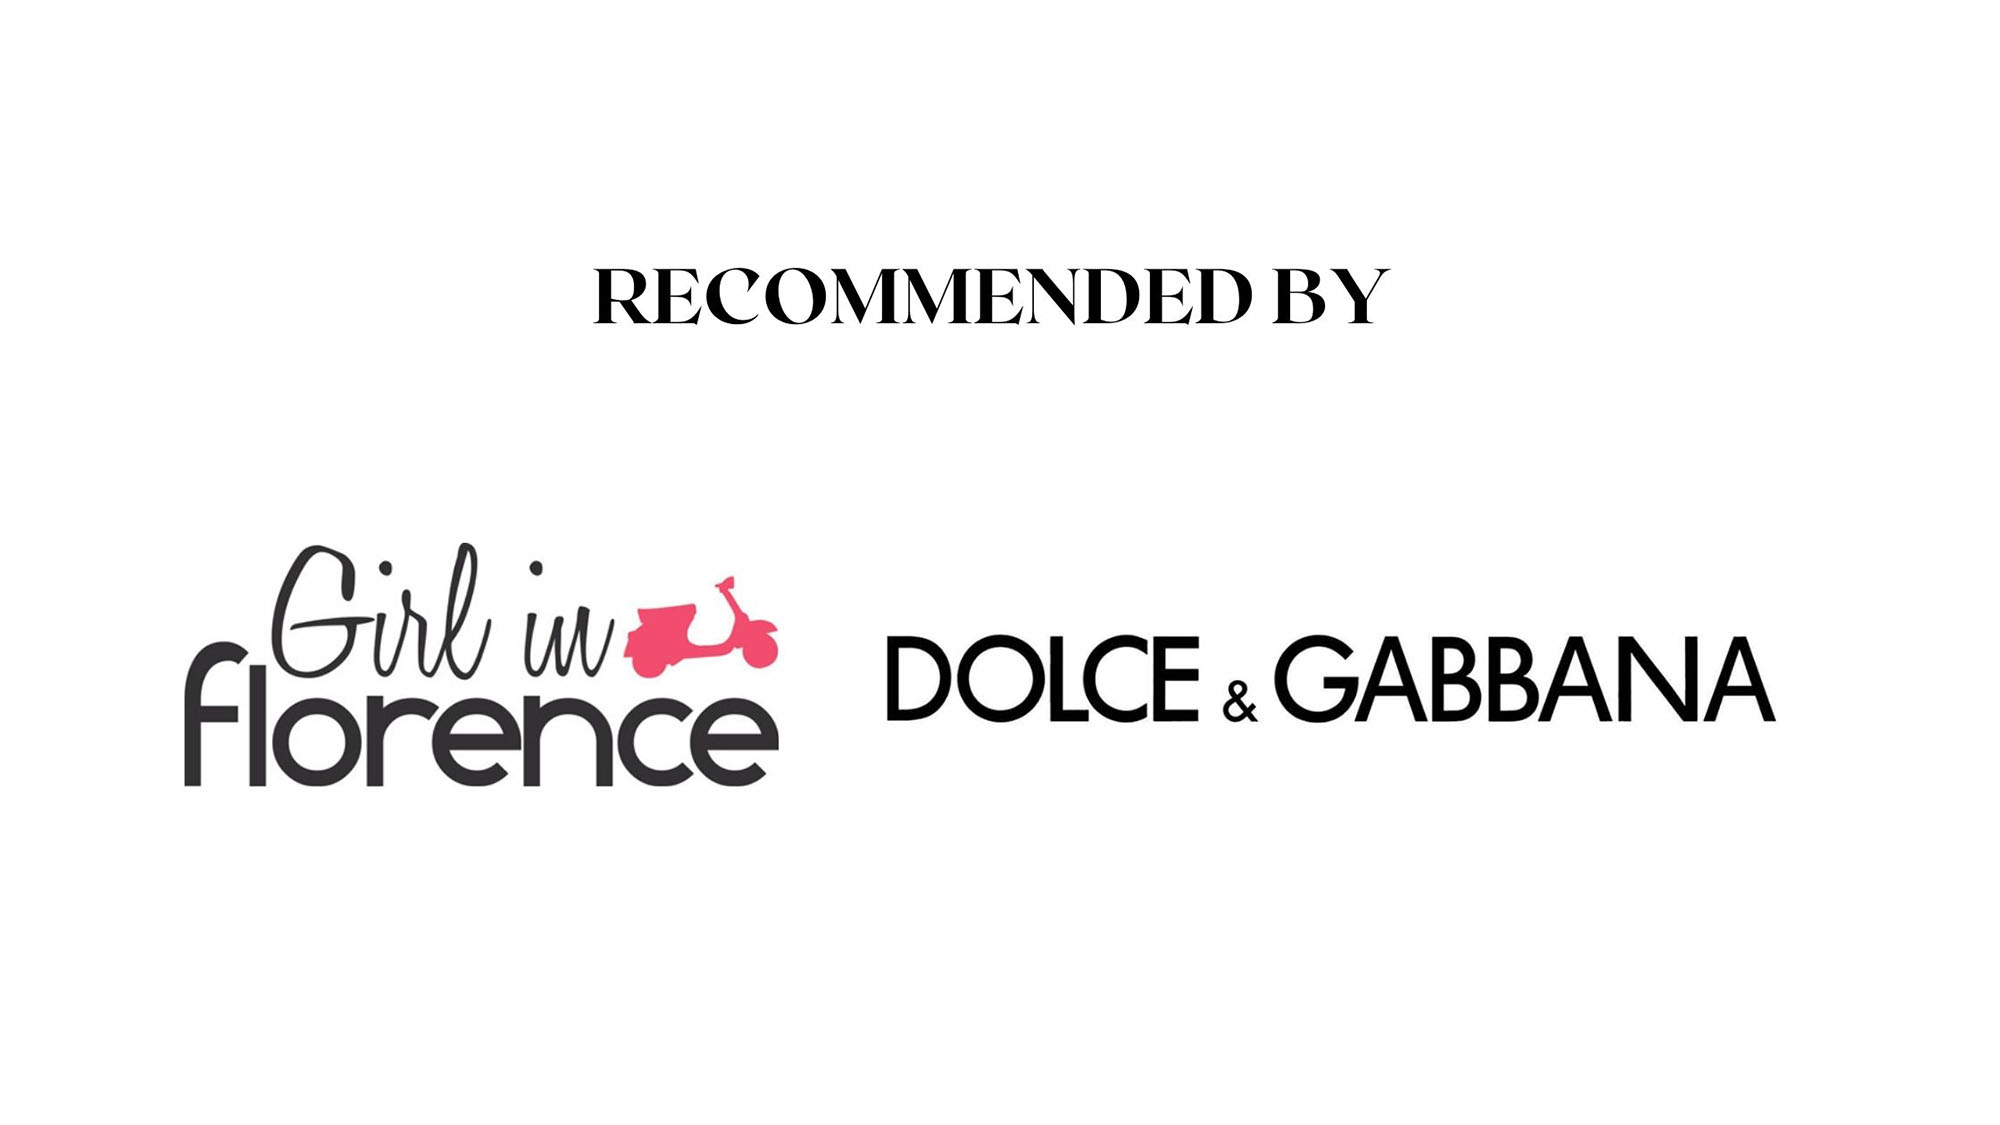 Recommended by Dolce and Gabbana and Girl in Florence